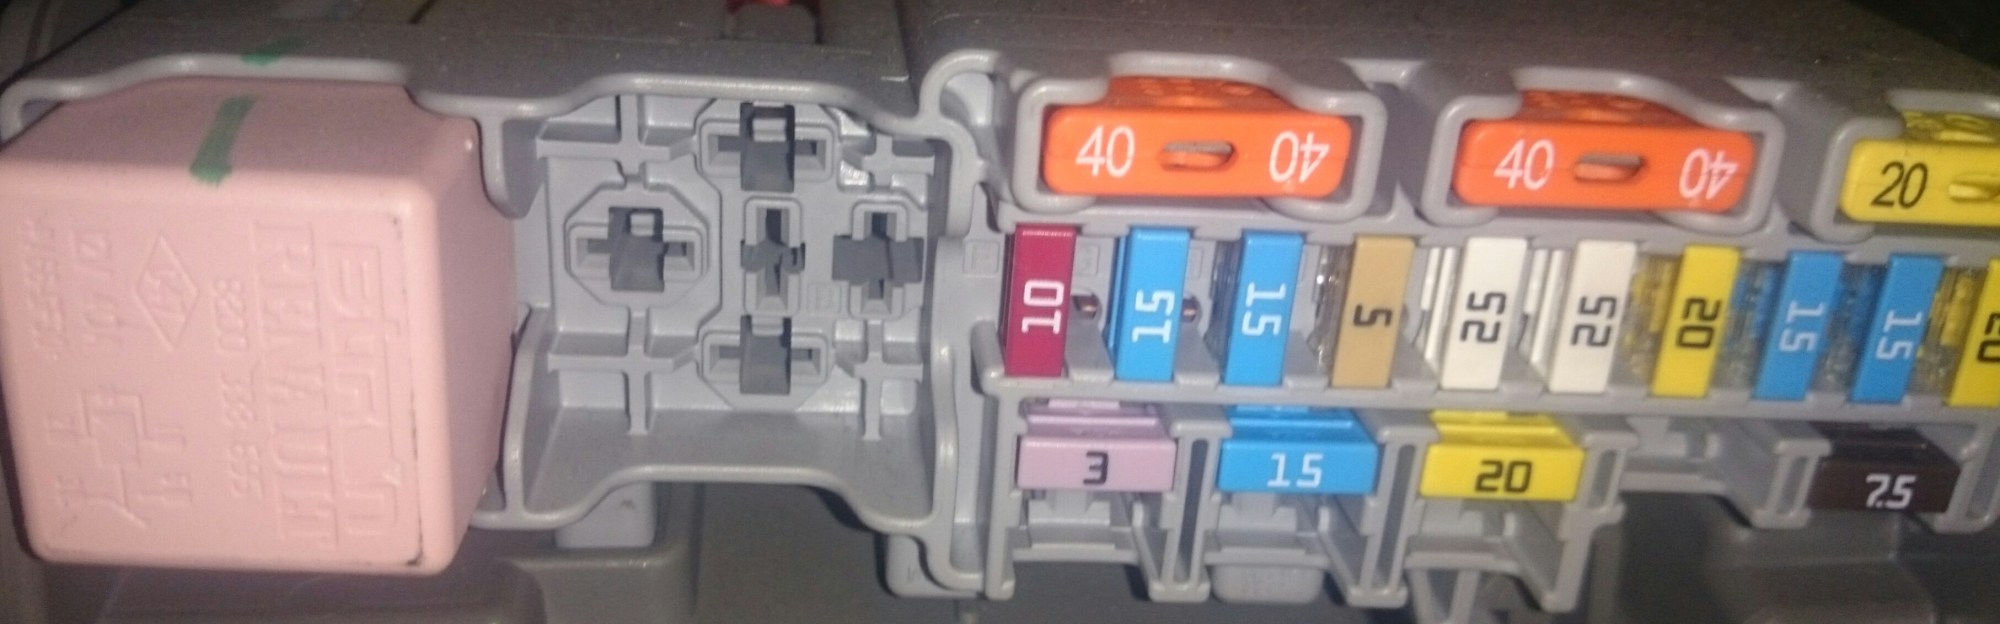 hight resolution of are the fuses in renault megane grande scenic vtx 1800 fuse box location fuse box layout